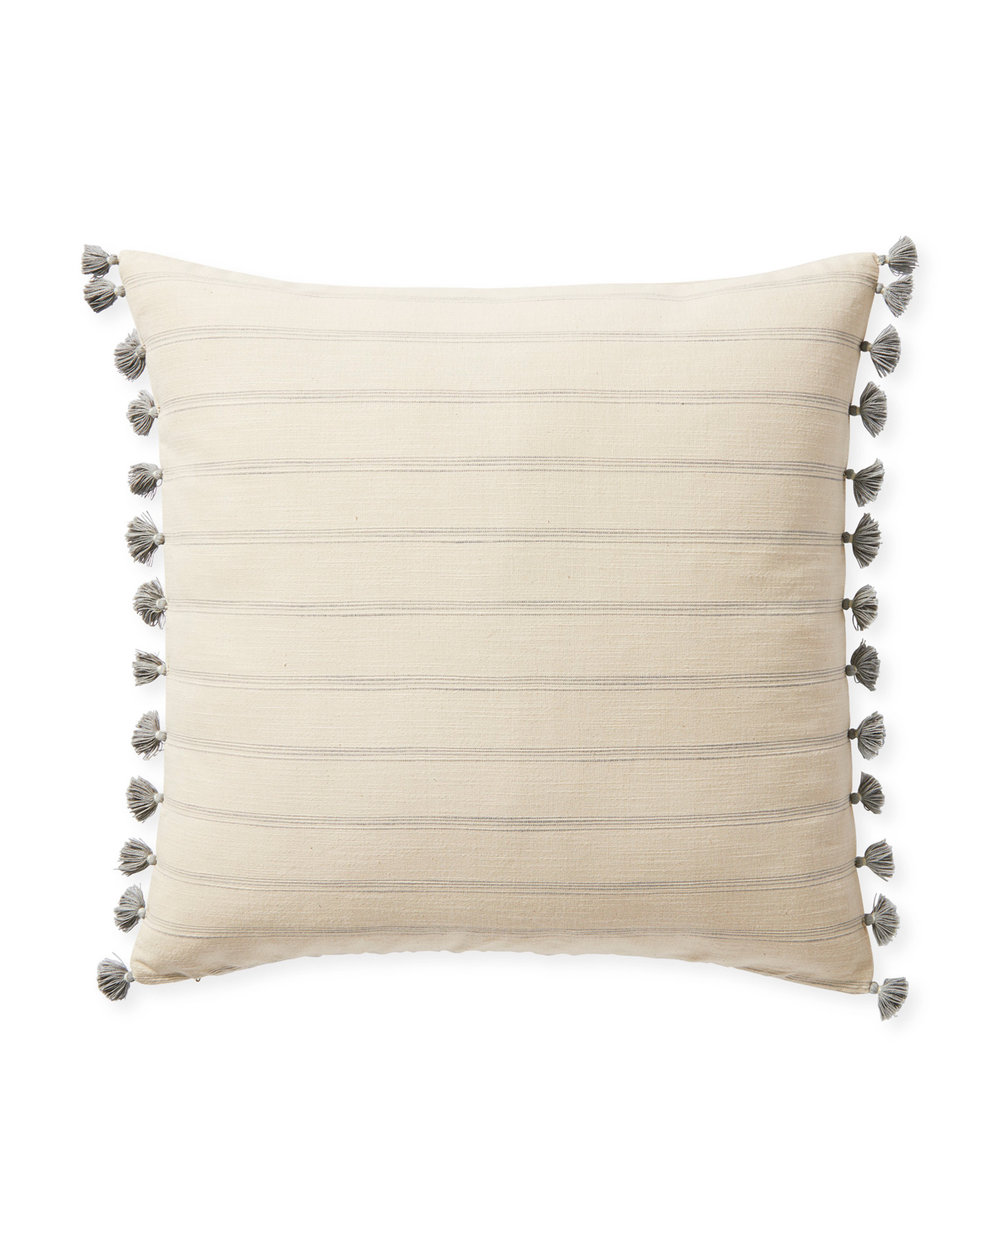 Dec_Pillow_Alsworth_22x22_Nickel_MV_0084_Crop_SH.jpg